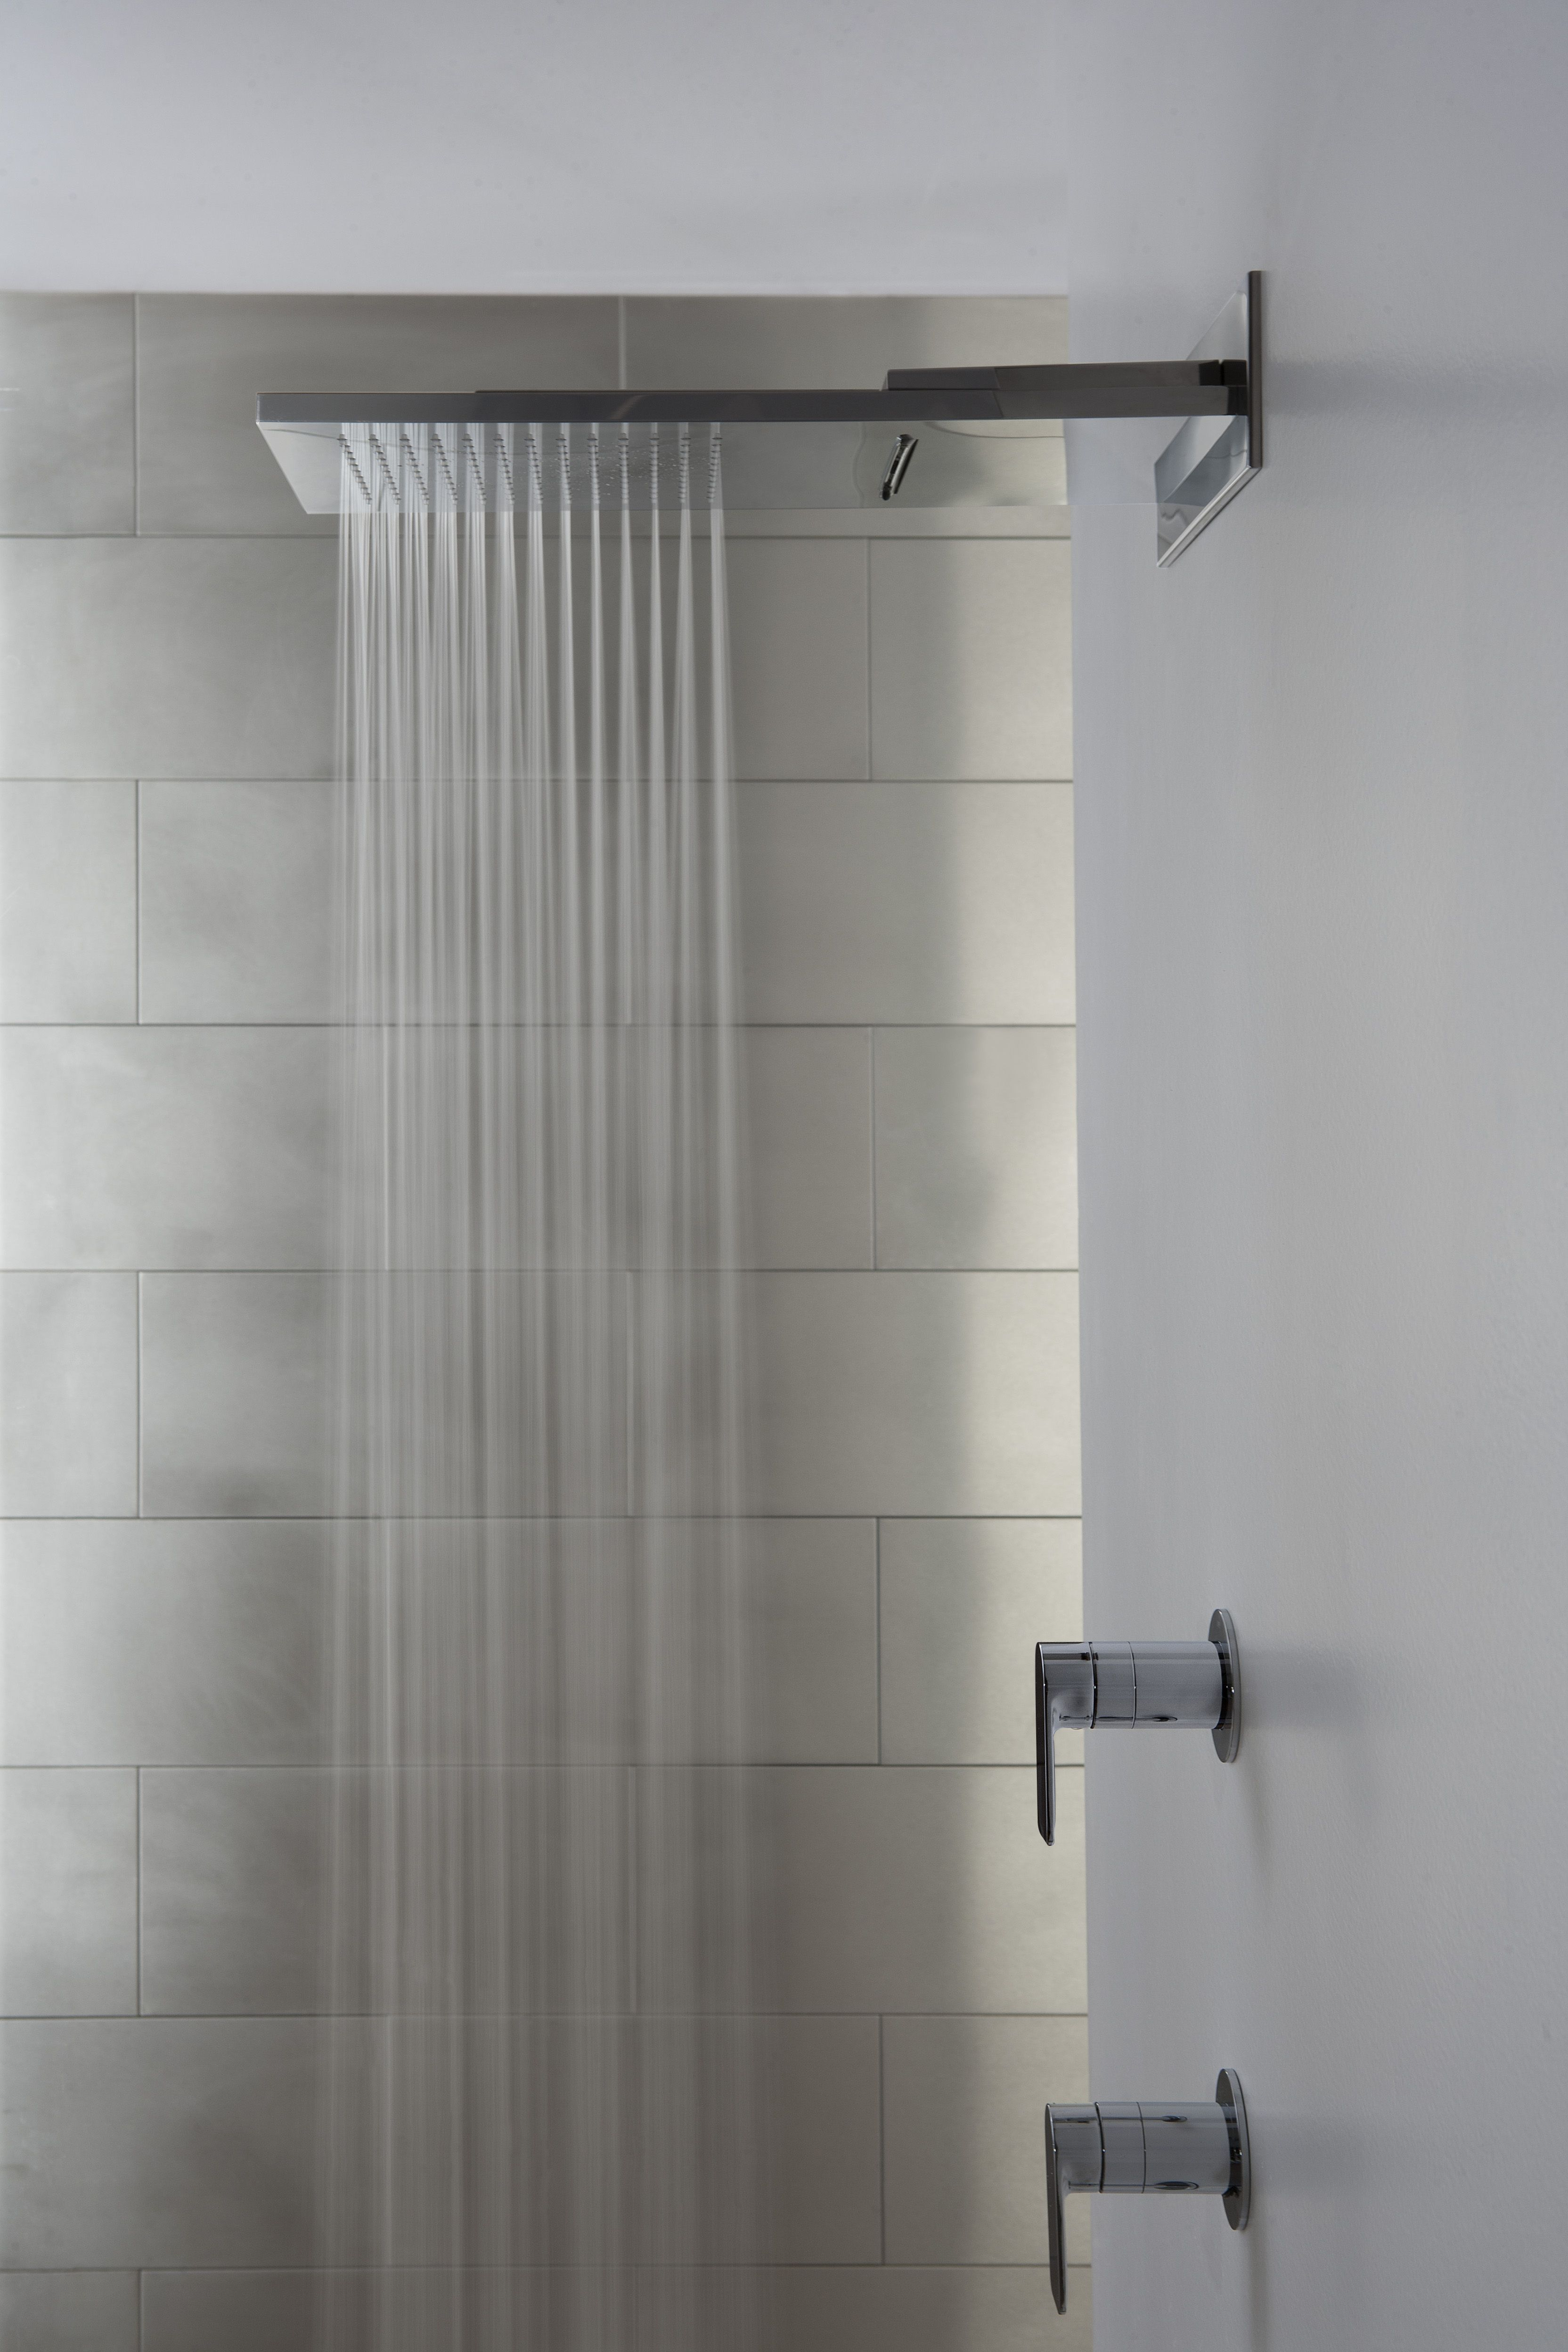 Marvelous Your Very Own Waterfall, With GRAFF Aqua Sense Wall Mounted Water Feature